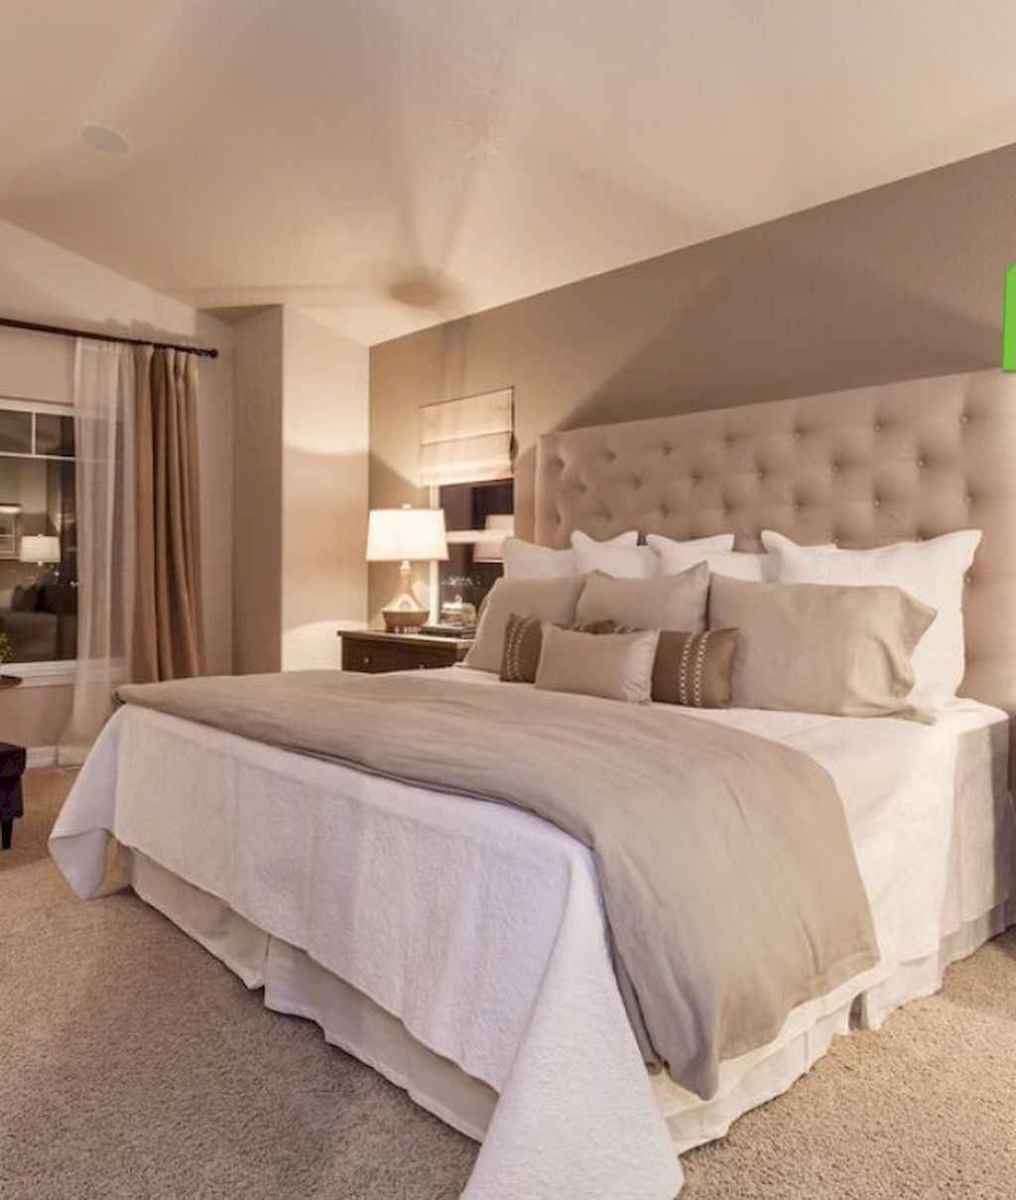 60 Romantic Master Bedroom Decor Ideas 18 Roomadnesscom